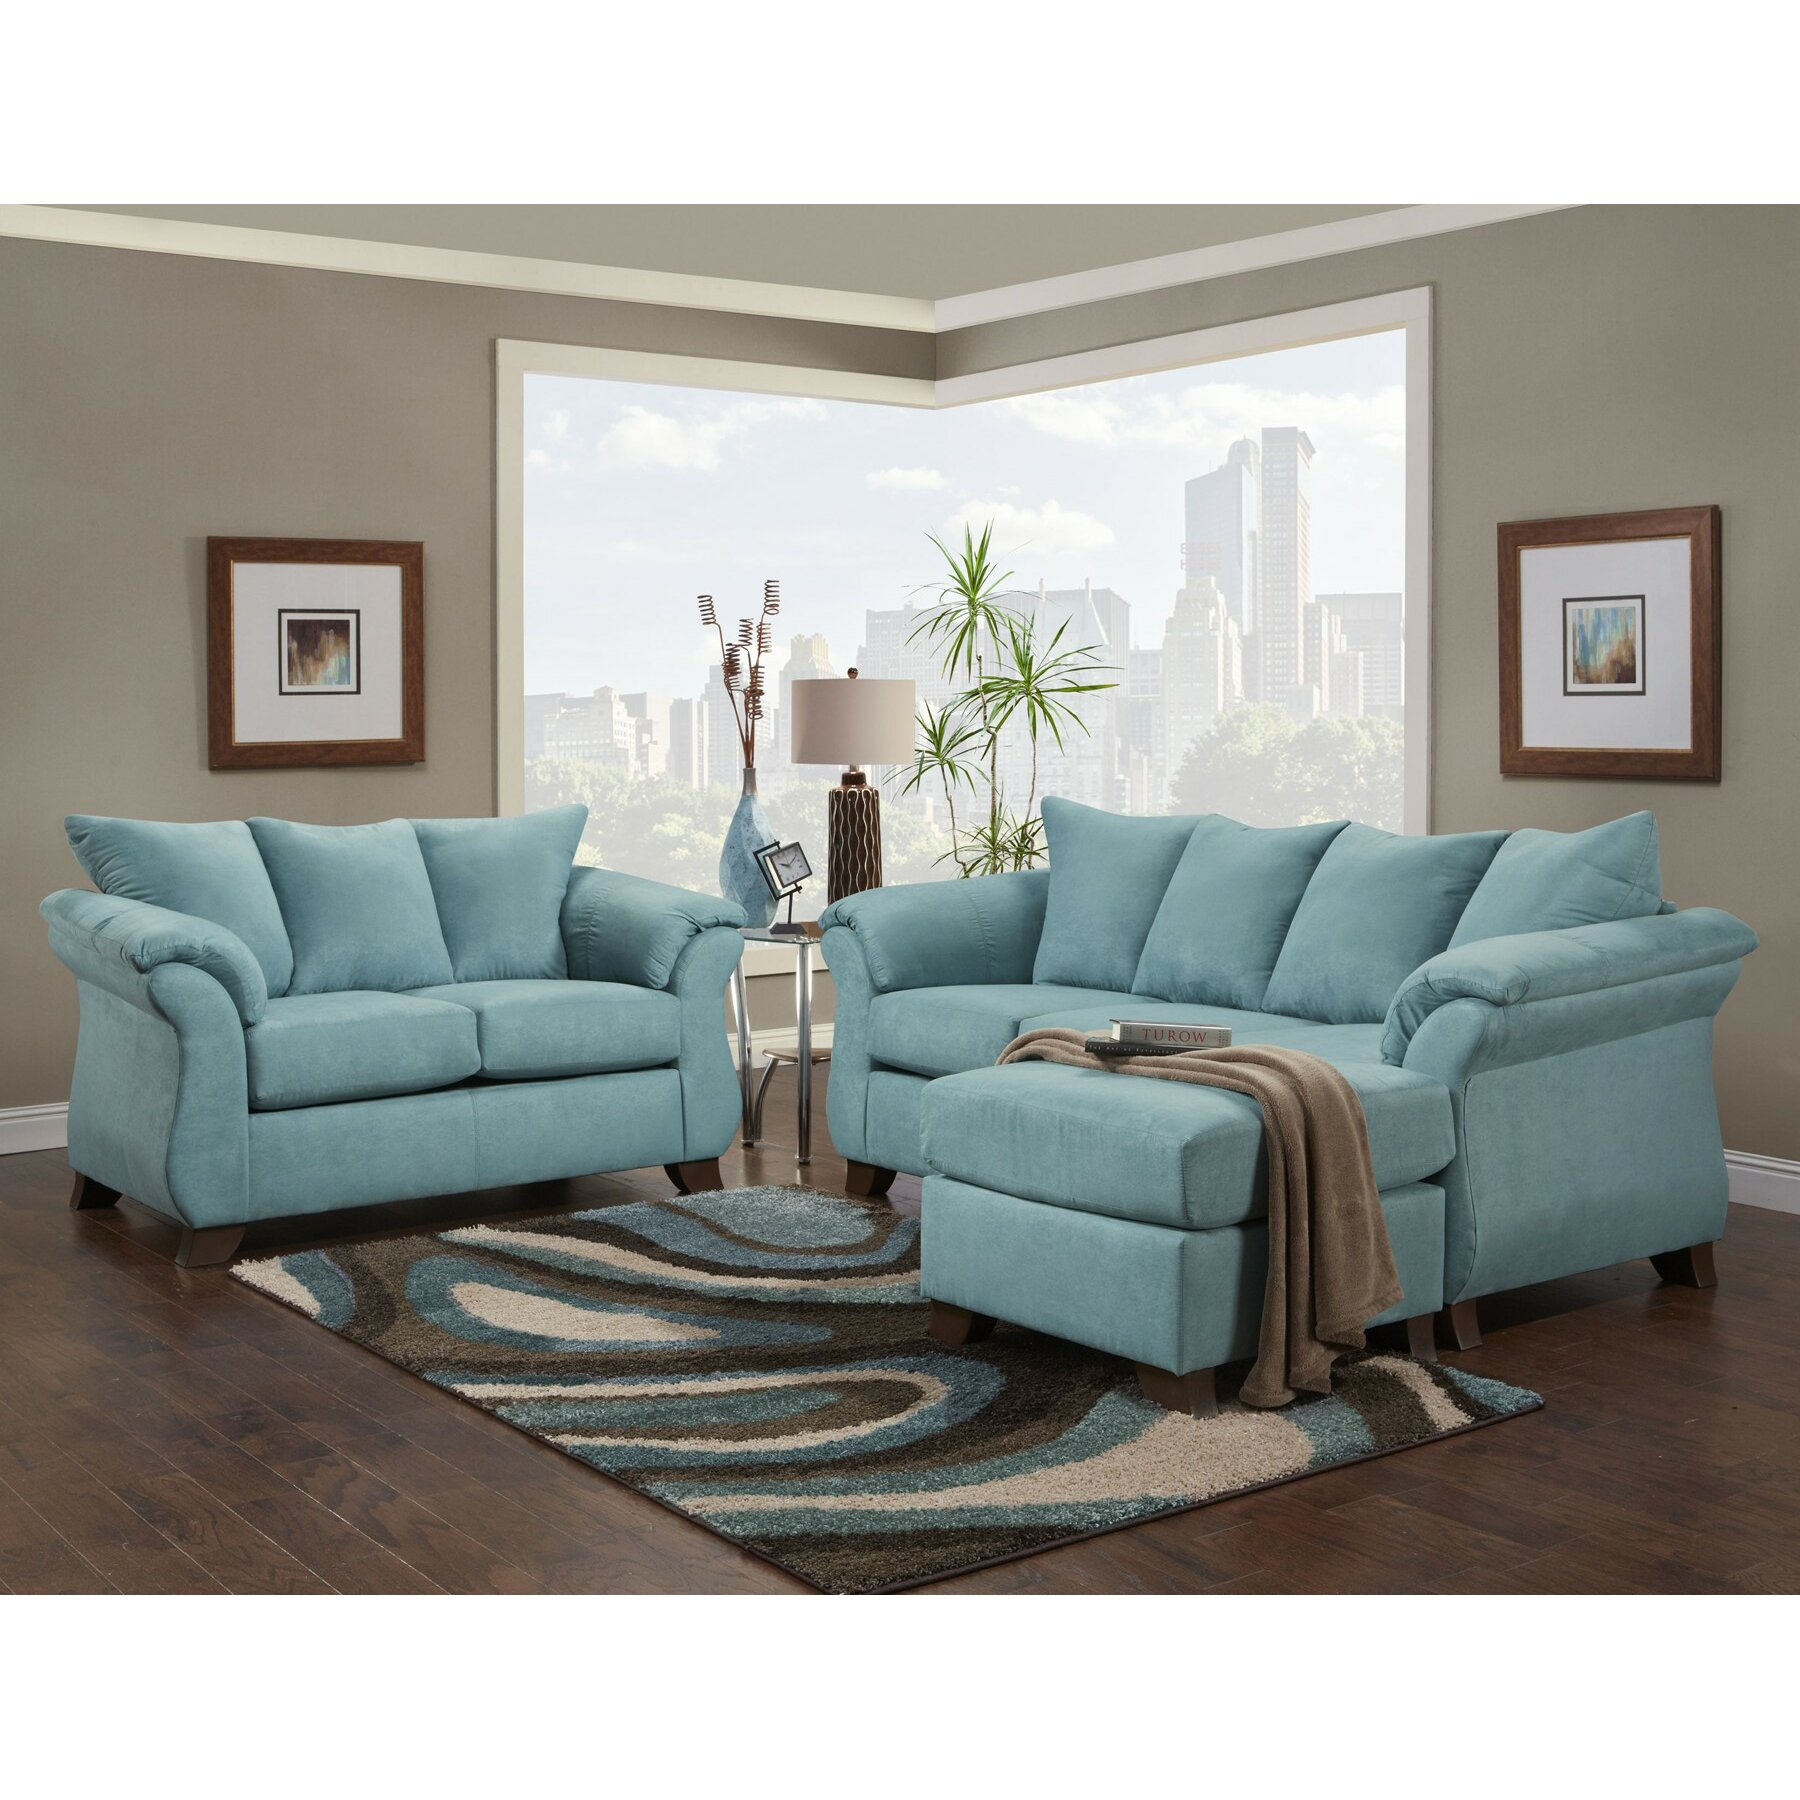 Wildon Home Cailyn Living Room Collection